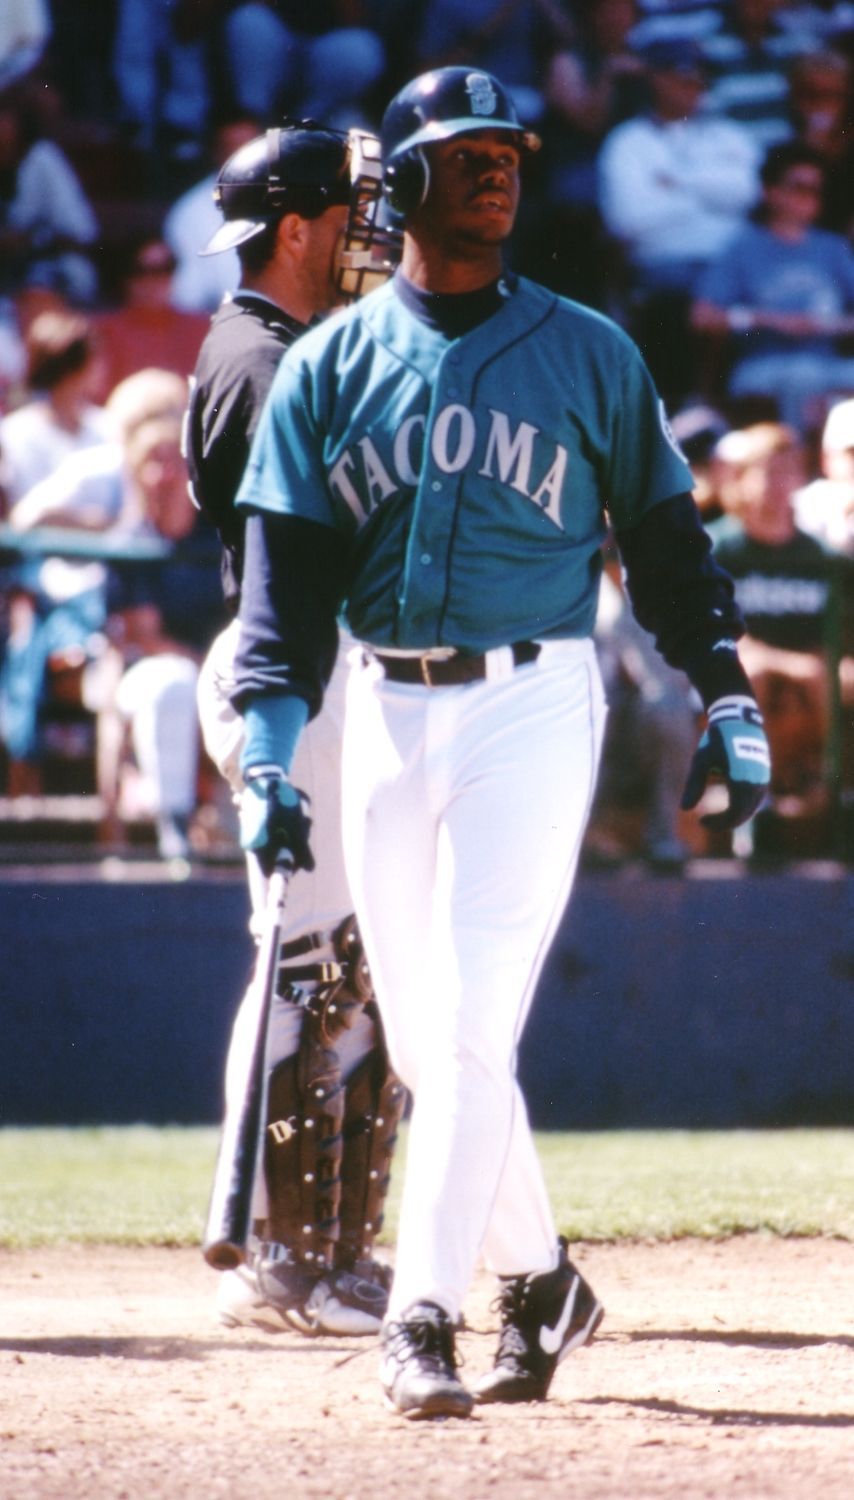 On August 13 1995 An Overflowed Crowd At Cheney Stadium Roared As Ken Griffey Jr Played A Rehab Game With Seattle Sports Mariners Baseball Seattle Mariners